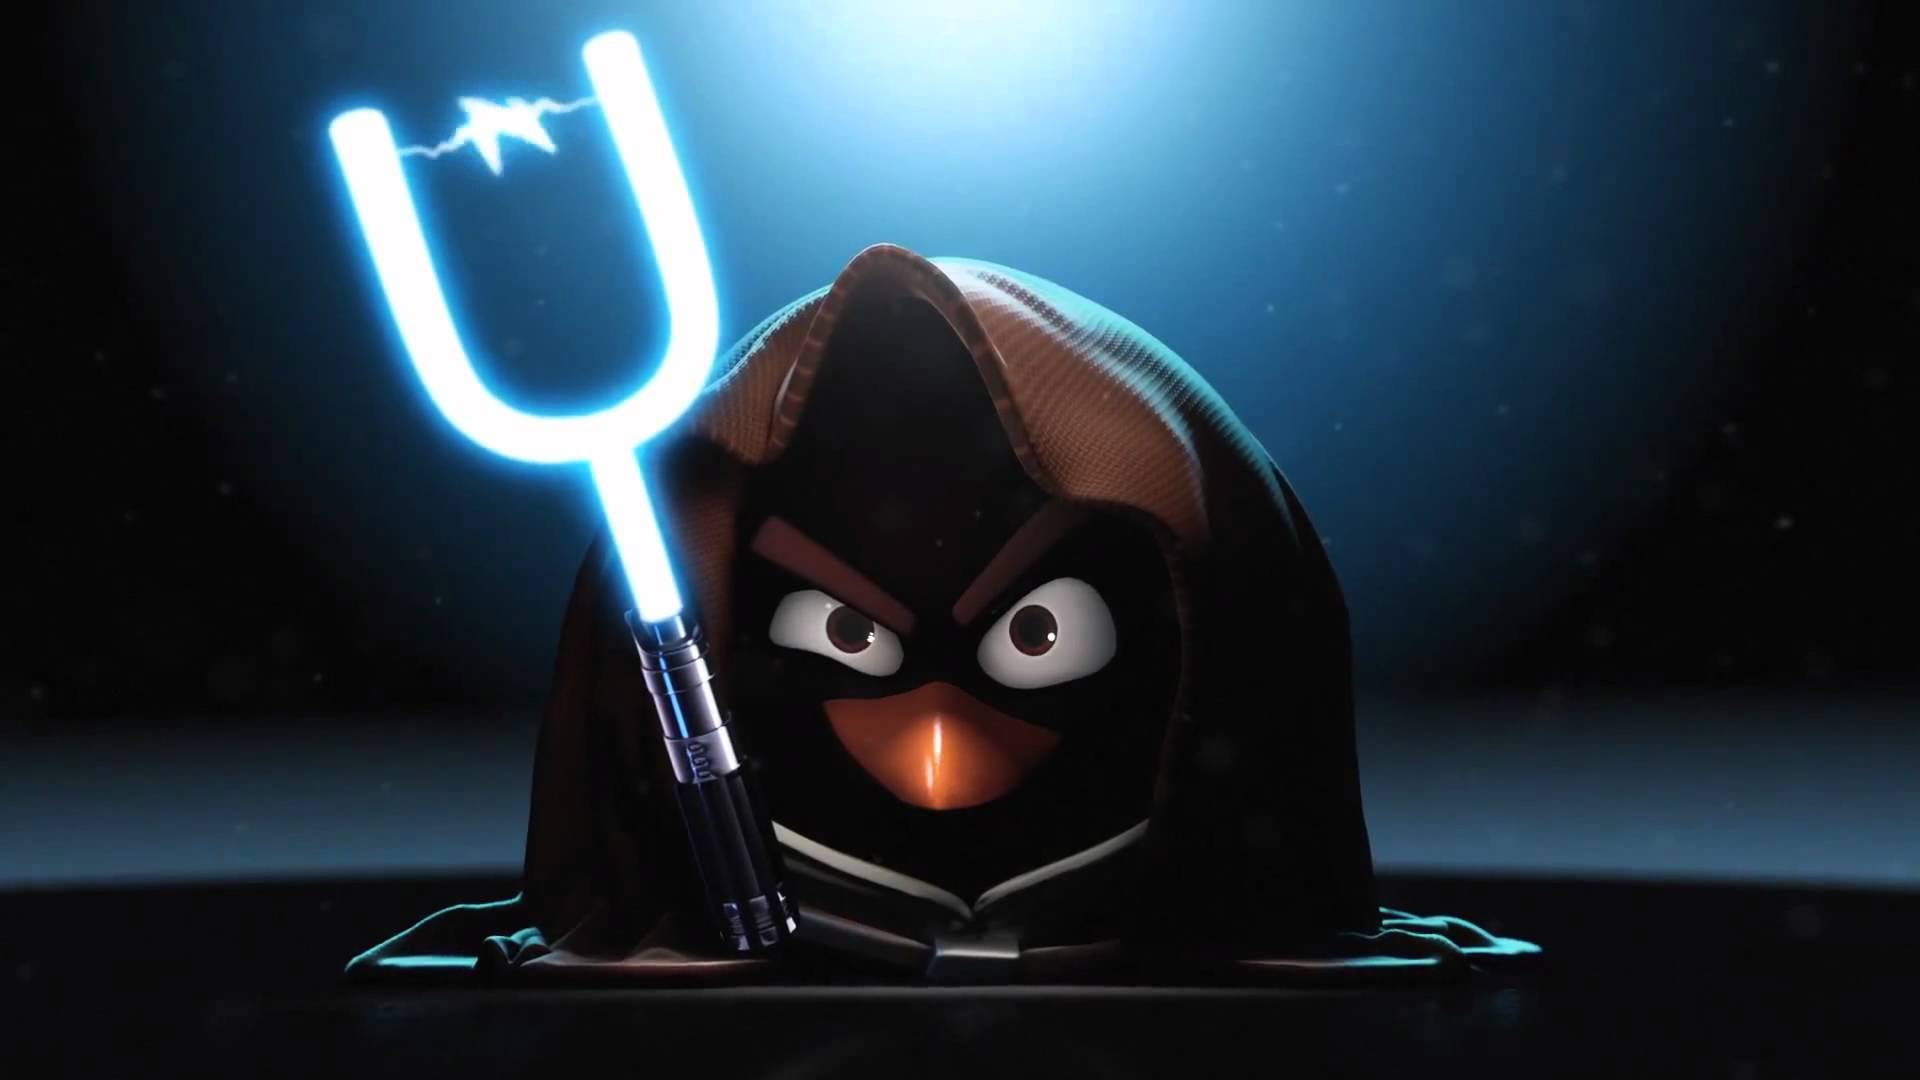 Angry Birds Star Wars Wallpaper 5